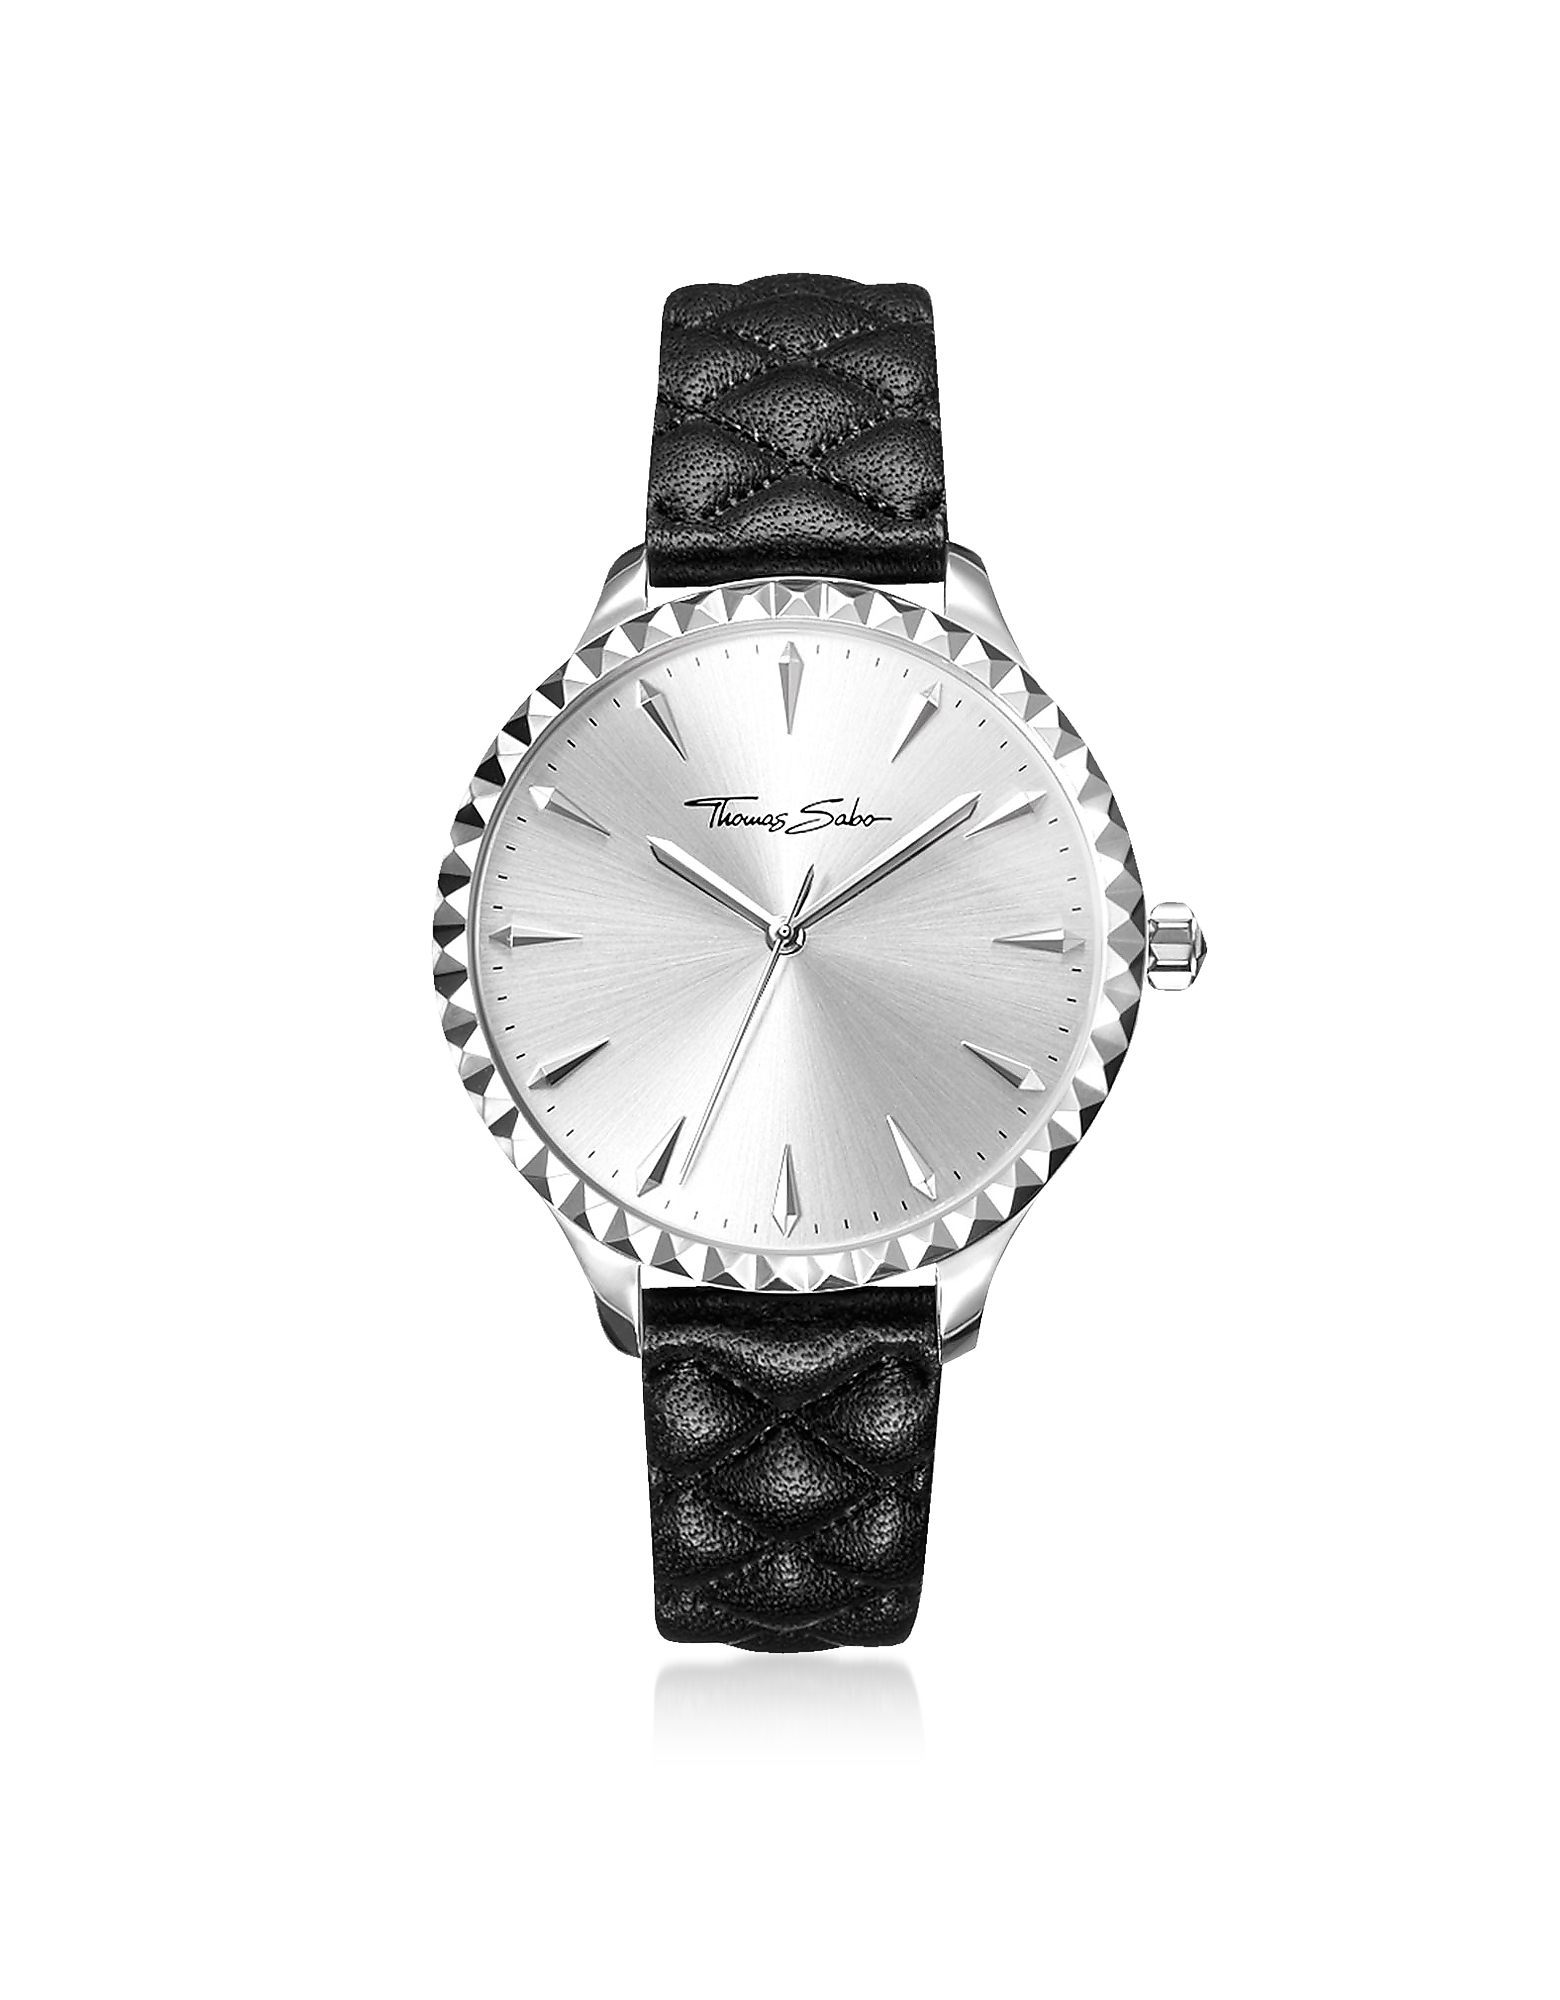 Rebel at Heart Silver Stainless Steel Women's Watch w/Black Quilted Leather Strap